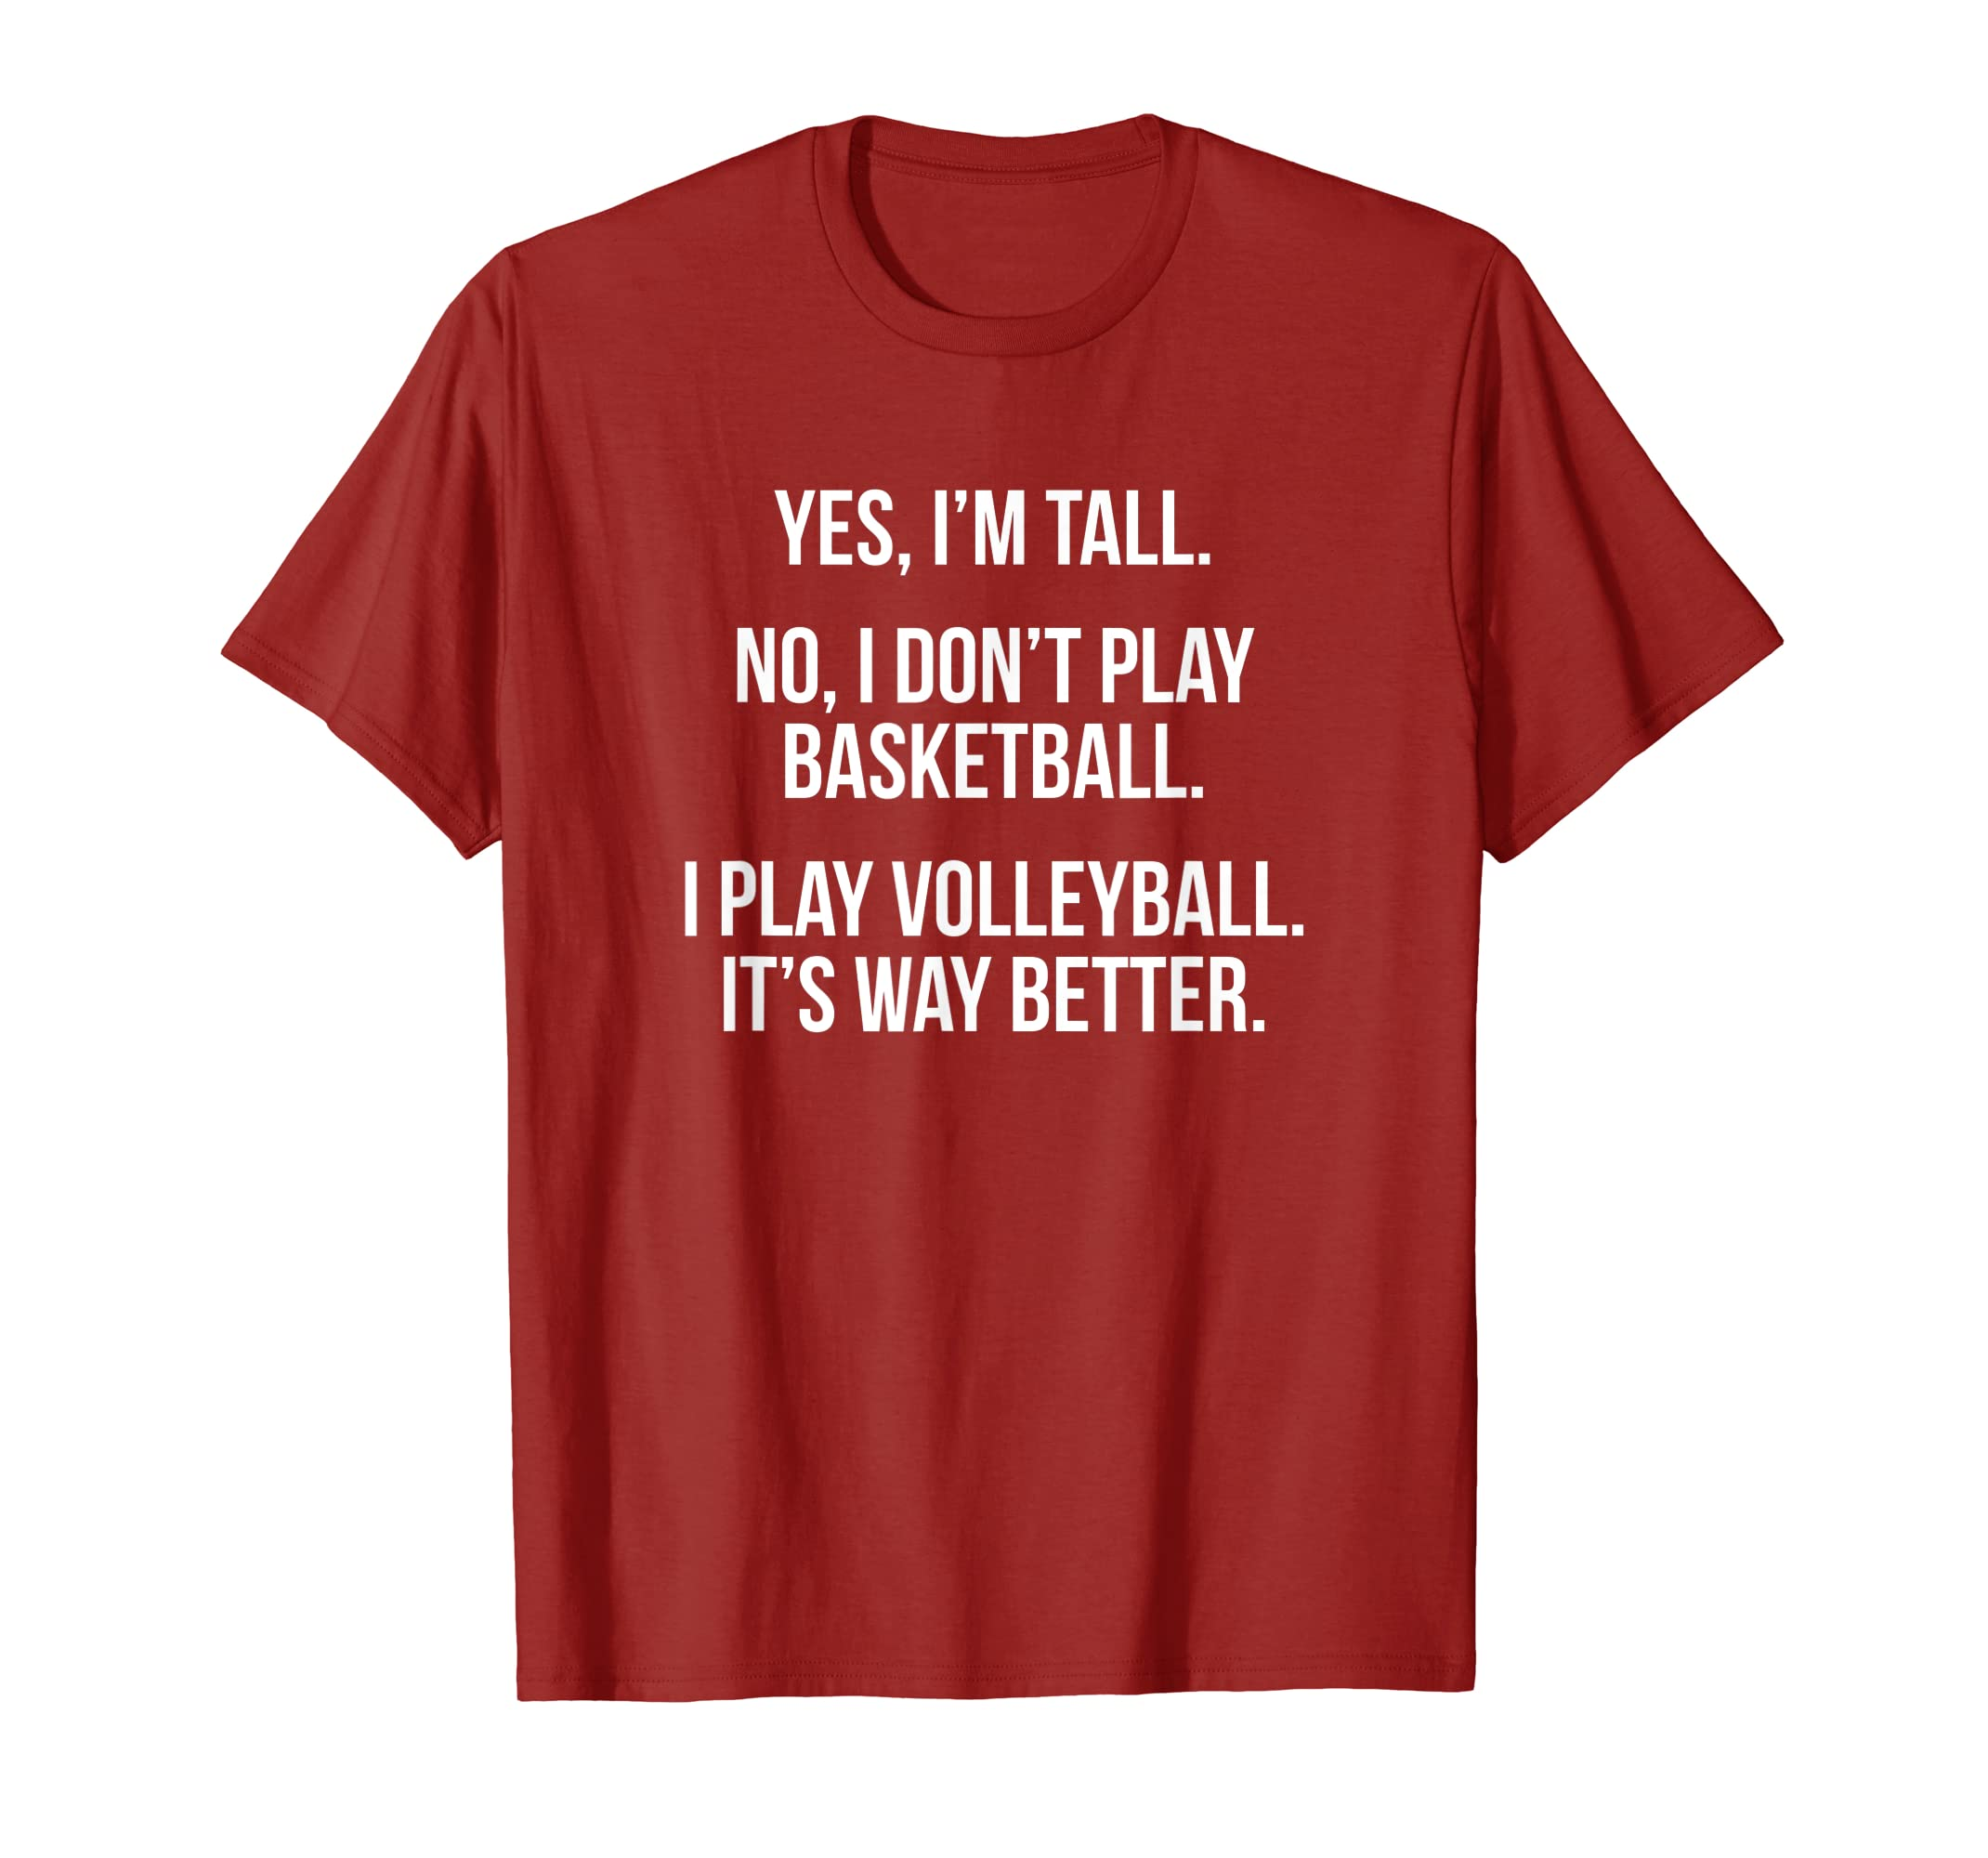 249afd0c0 Amazon.com: Tall people play volleyball funny graphic tee shirt gift:  Clothing